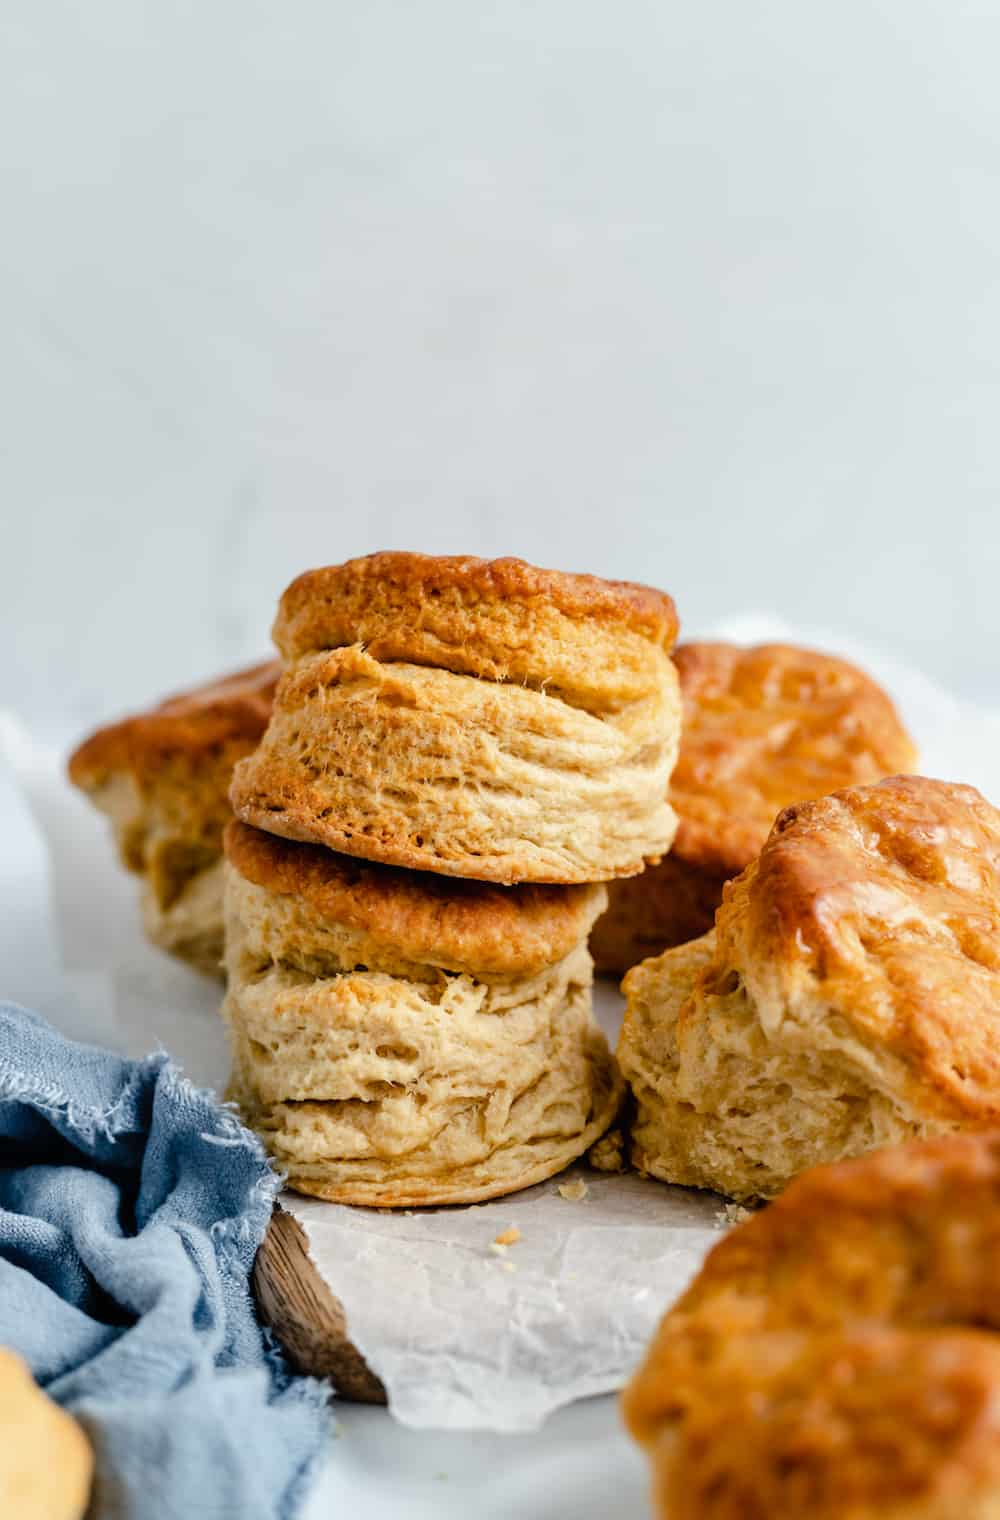 A Pile of Freshly-Baked Vegan Biscuits on a Piece of Wax Paper